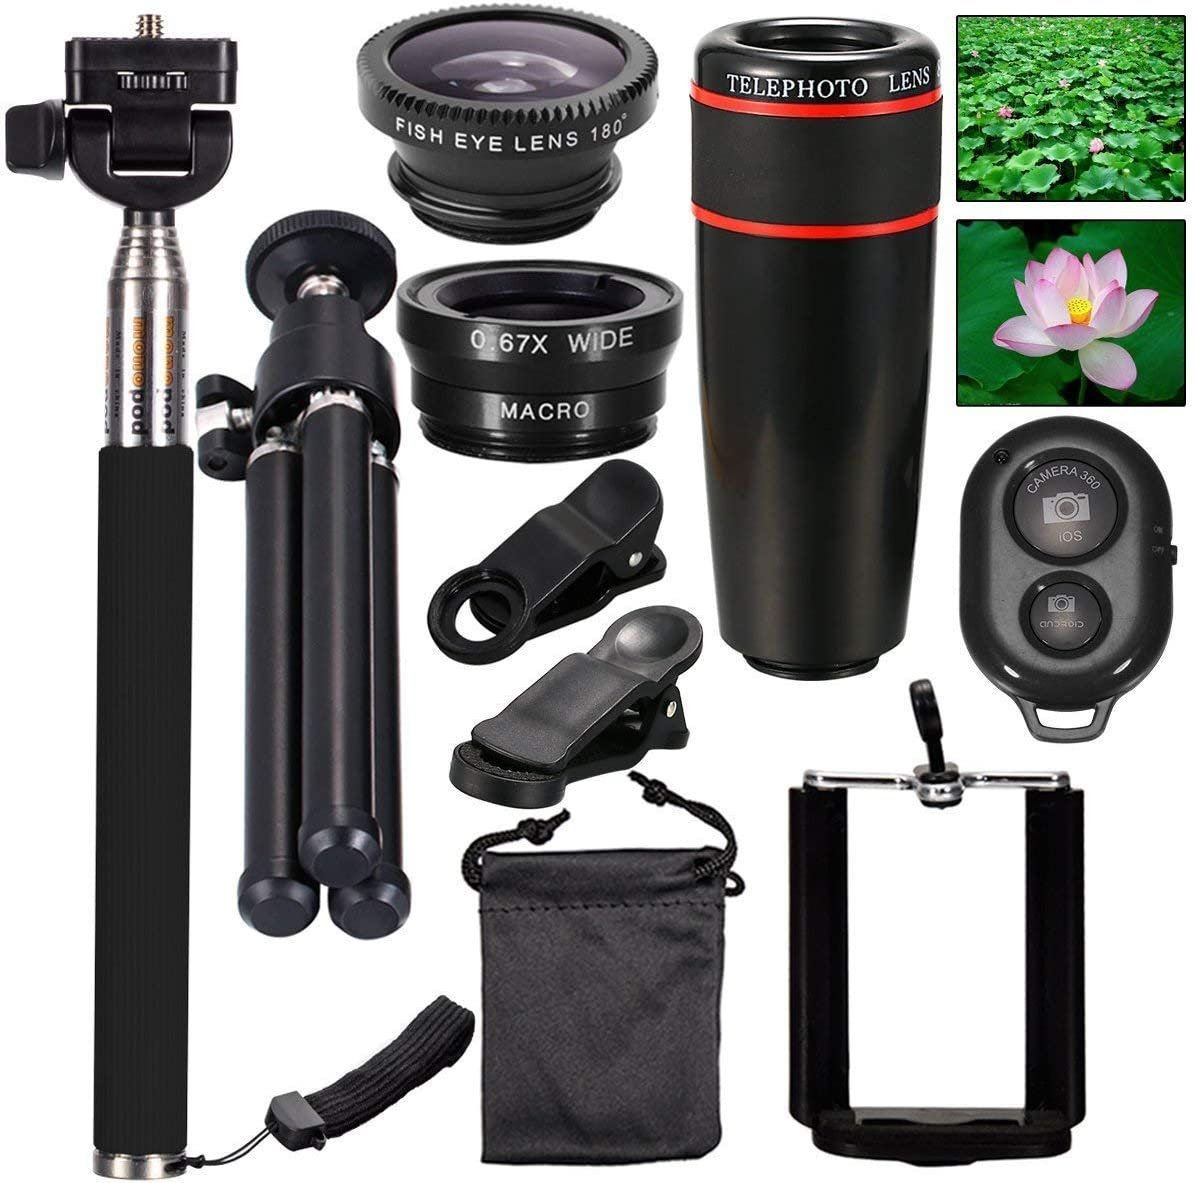 10 in1 Camera Lens Kit ,AnKooK 8x Telescope Lens + Macro Lens + Selfie Stick Monopod + Bluetooth Remote Control + Mini Tripod for iPhone 8/8 Plus, Samsung Galaxy S9 Edge and Smartphone